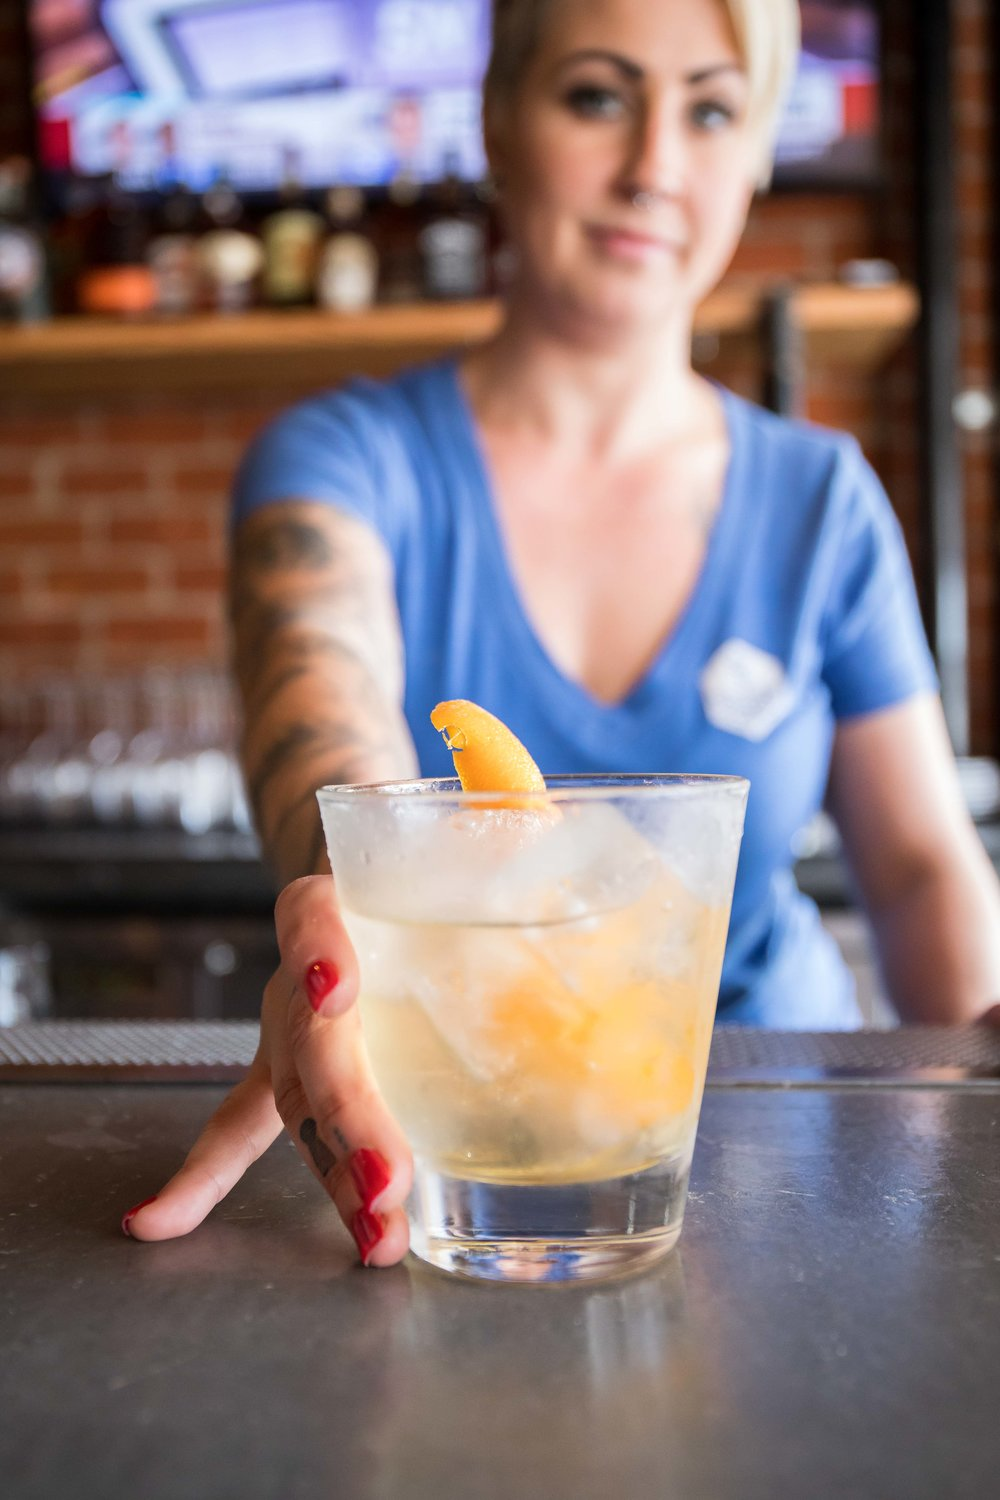 """Moving on over from other noted craft cocktail bars in San Diego, Ashley Moore steps into the role of Head Bartender. Her spirit forward approachable cocktail program includes some fun cocktails like """"My First Time"""" - jalapeno-infused tequila, St. Germain, Yellow Chartreuse, lemon, grapefruit bitters & salt."""